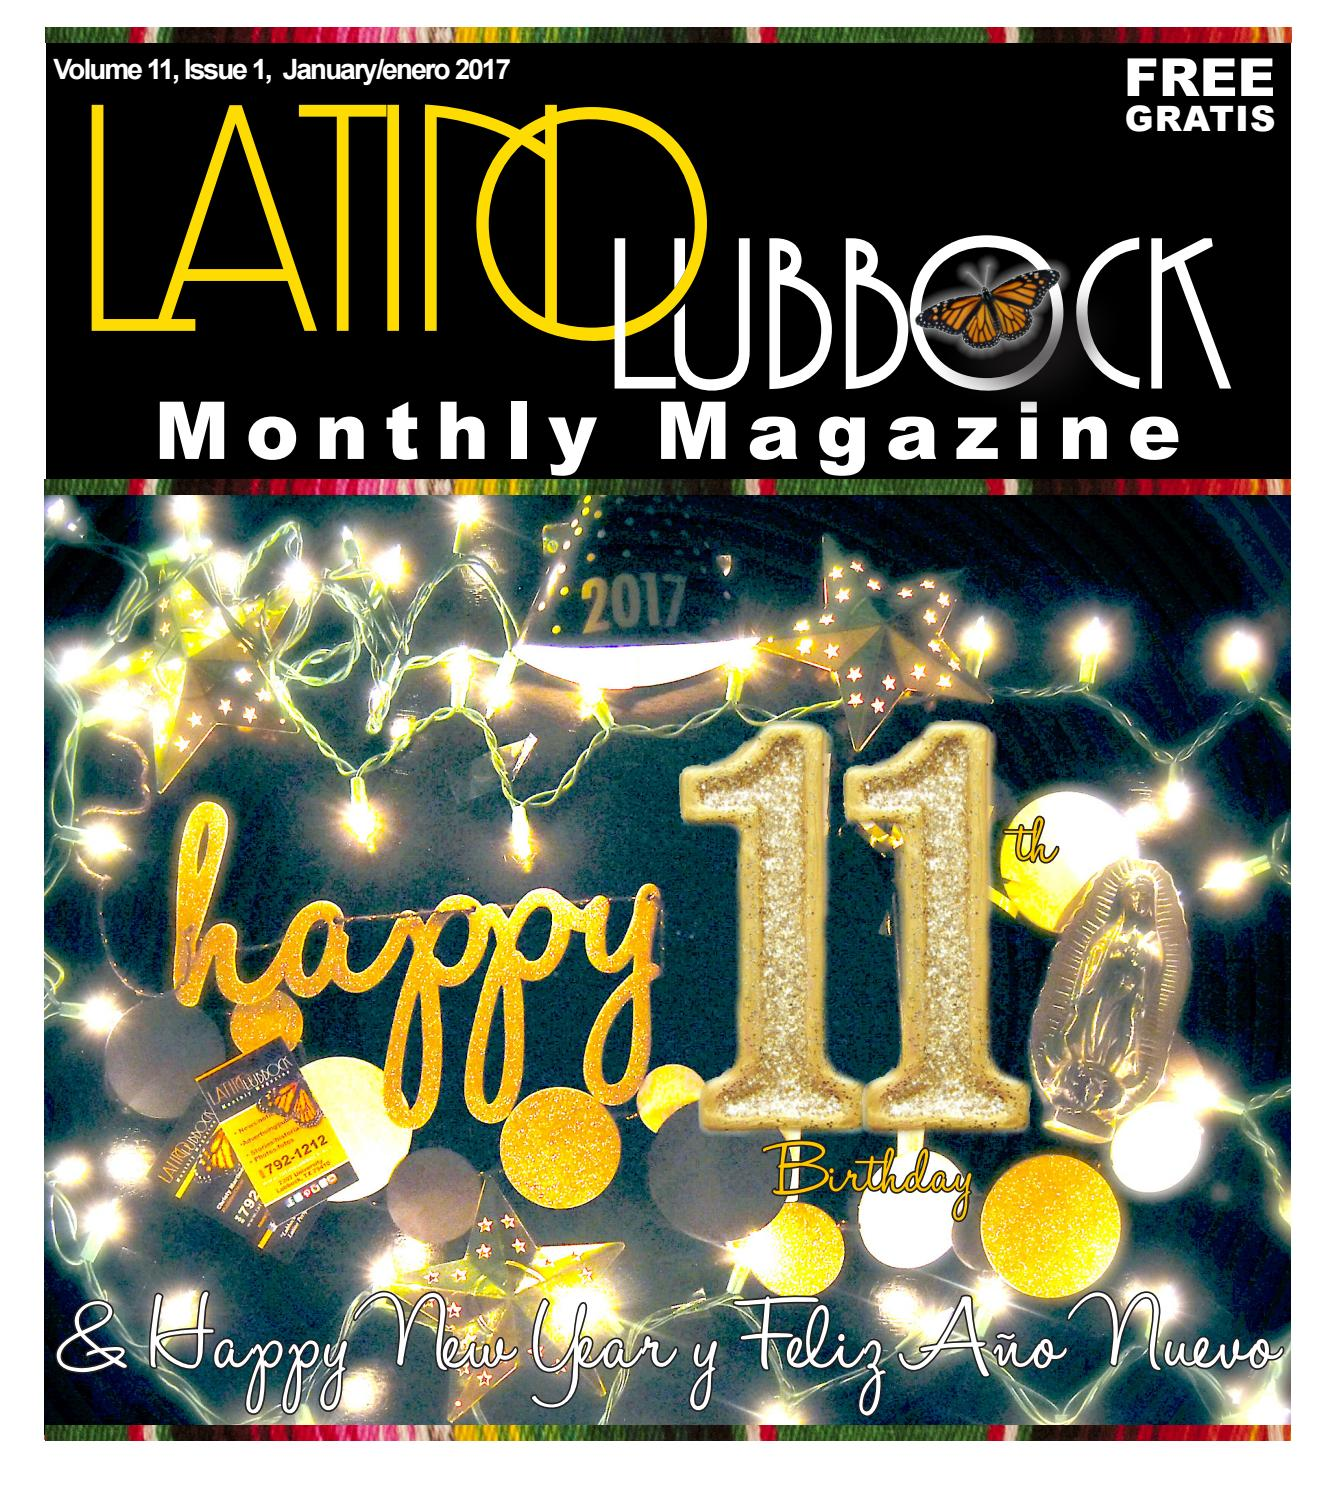 2017 January Latino Lubbock Magazine by Christy Martinez-Garcia - issuu